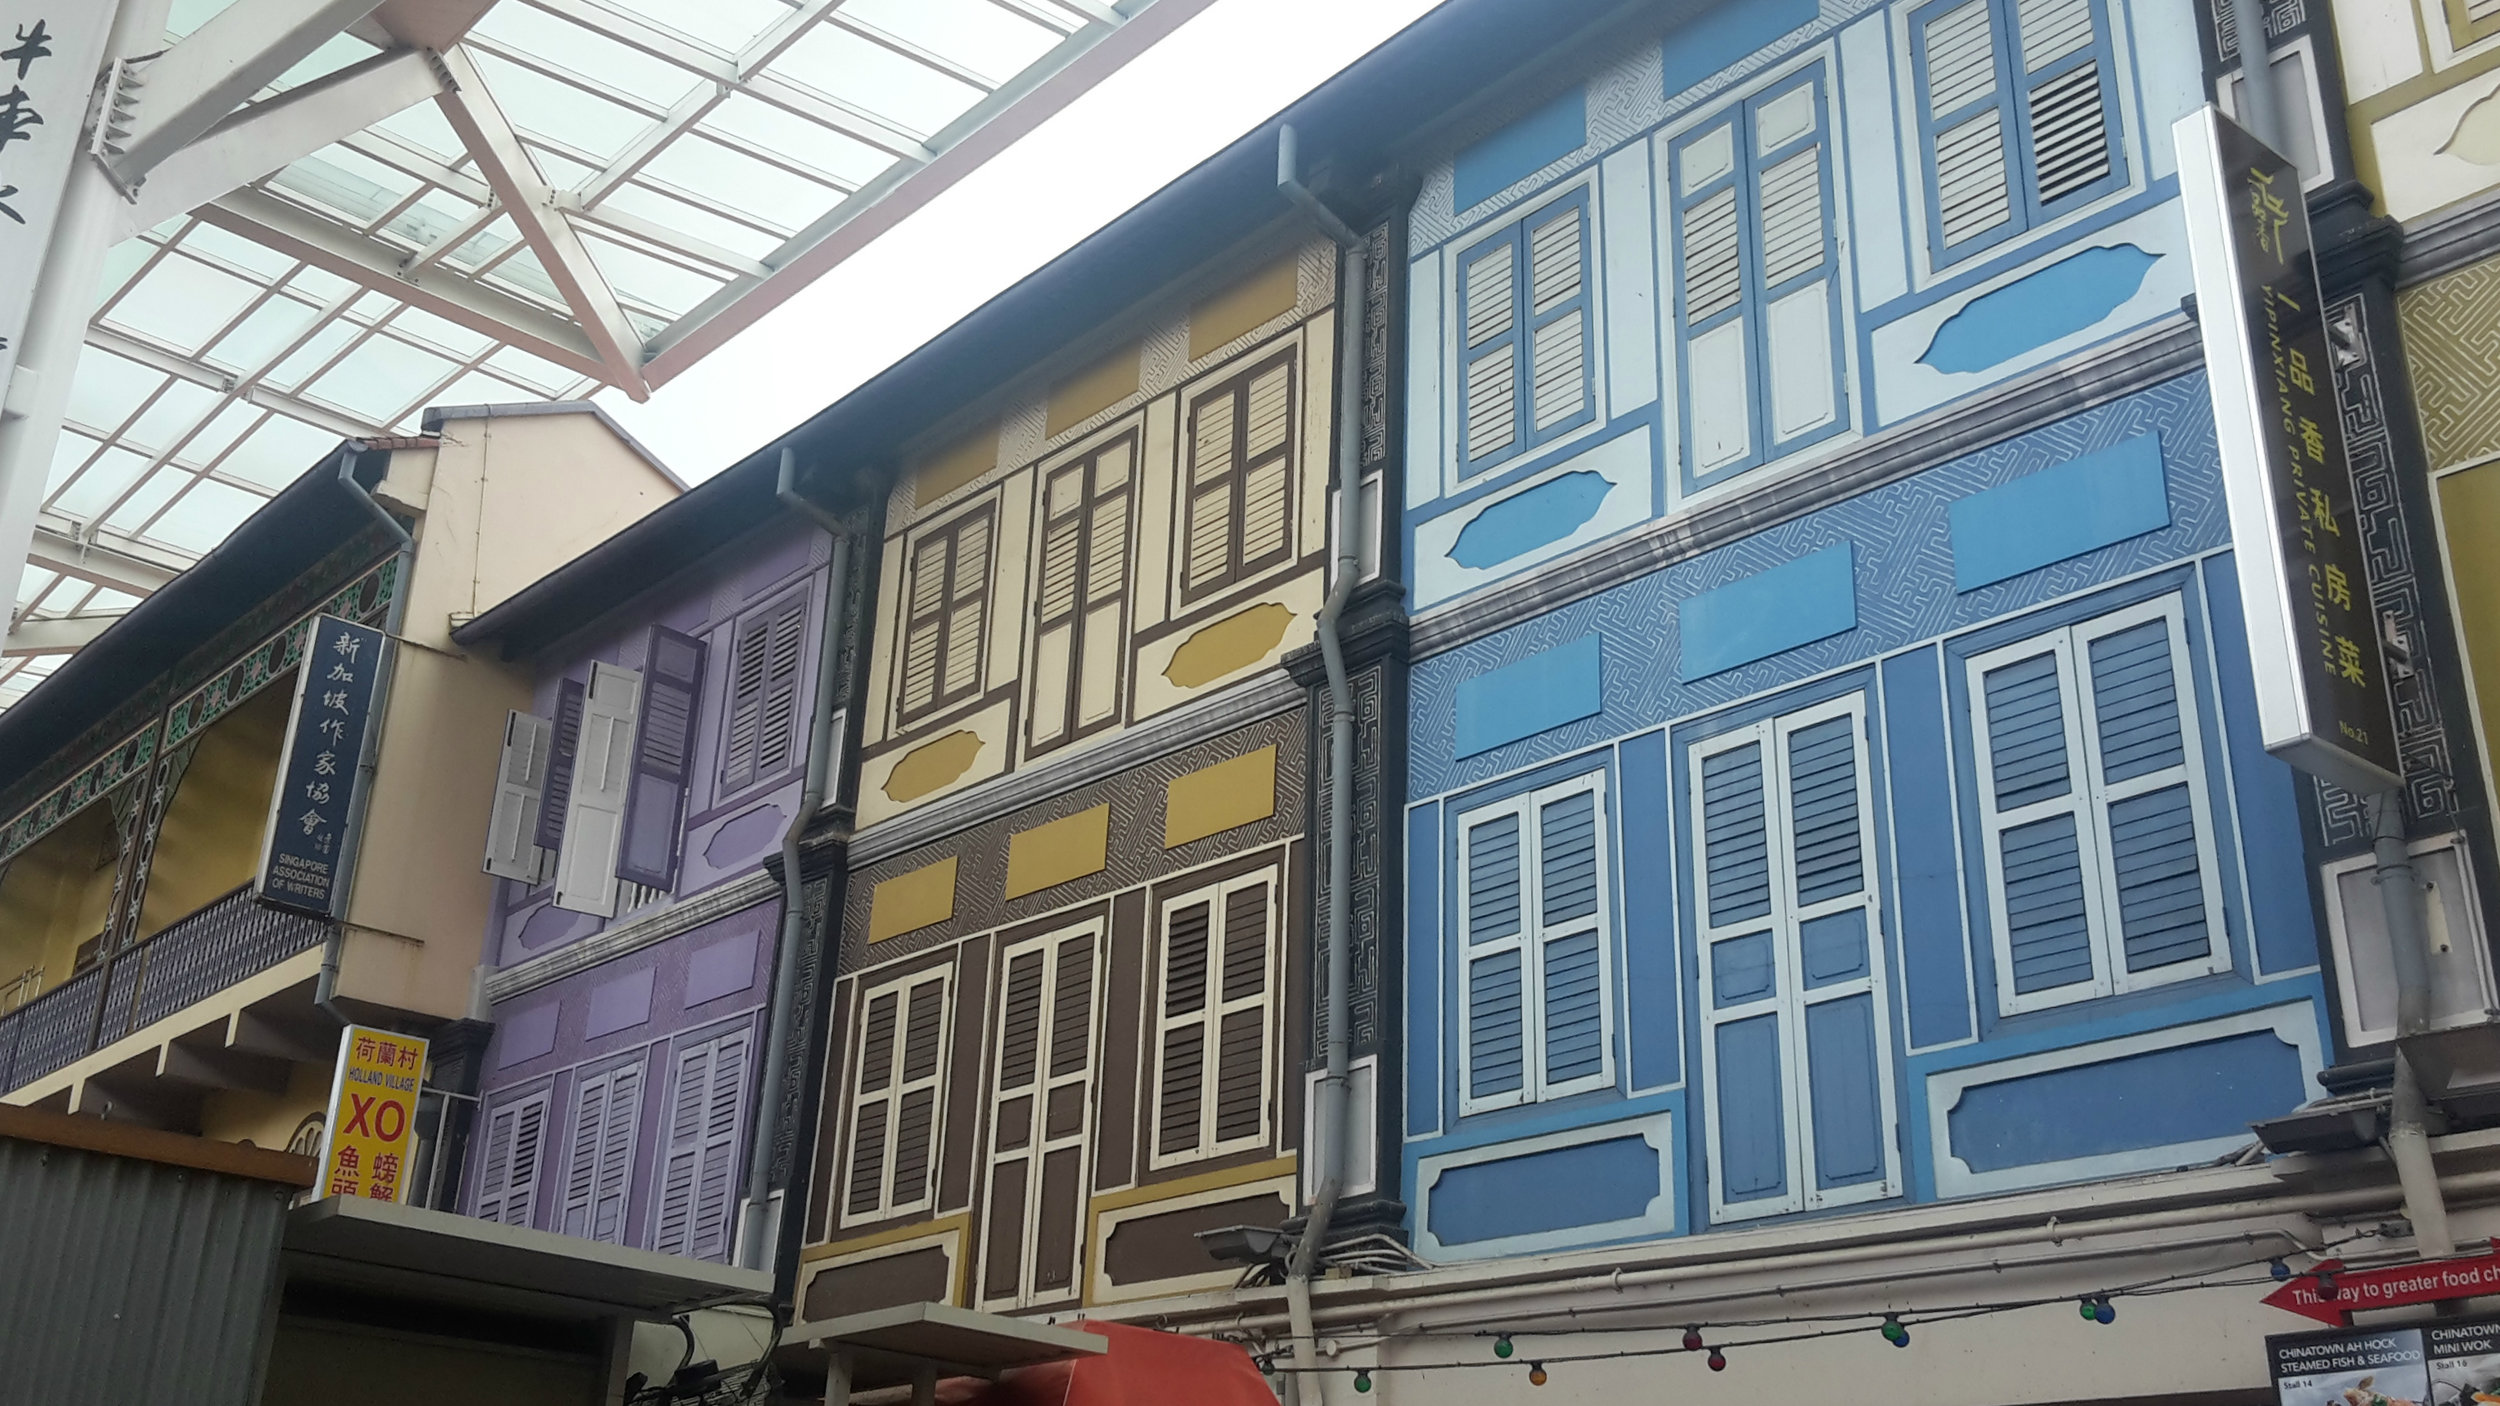 Colourful building fronts, Chinatown Singapore